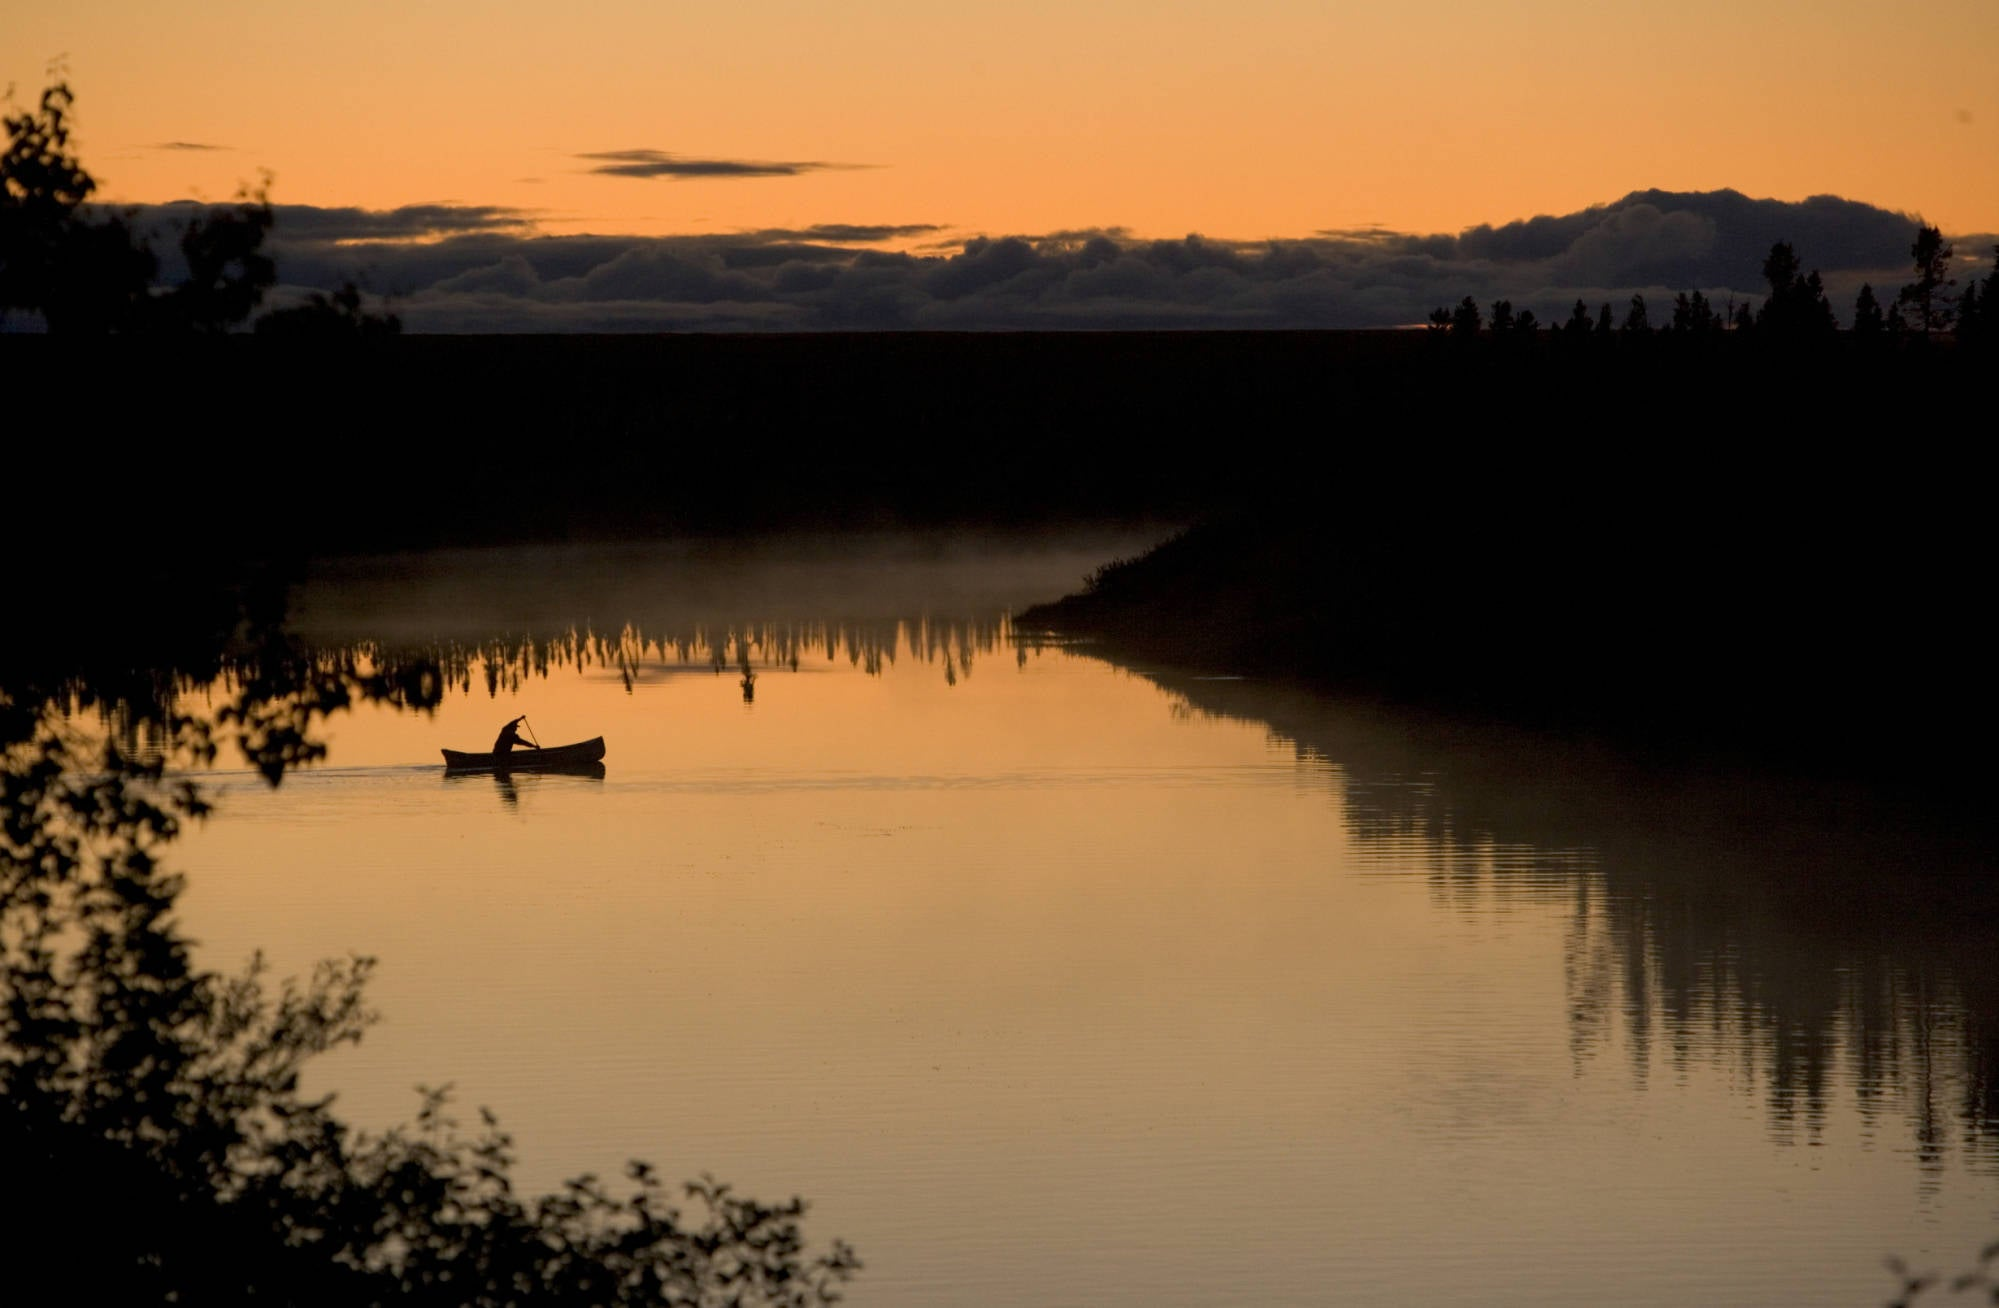 Silhouette of a paddler canoeing across a calm lake at sunrise or sunset